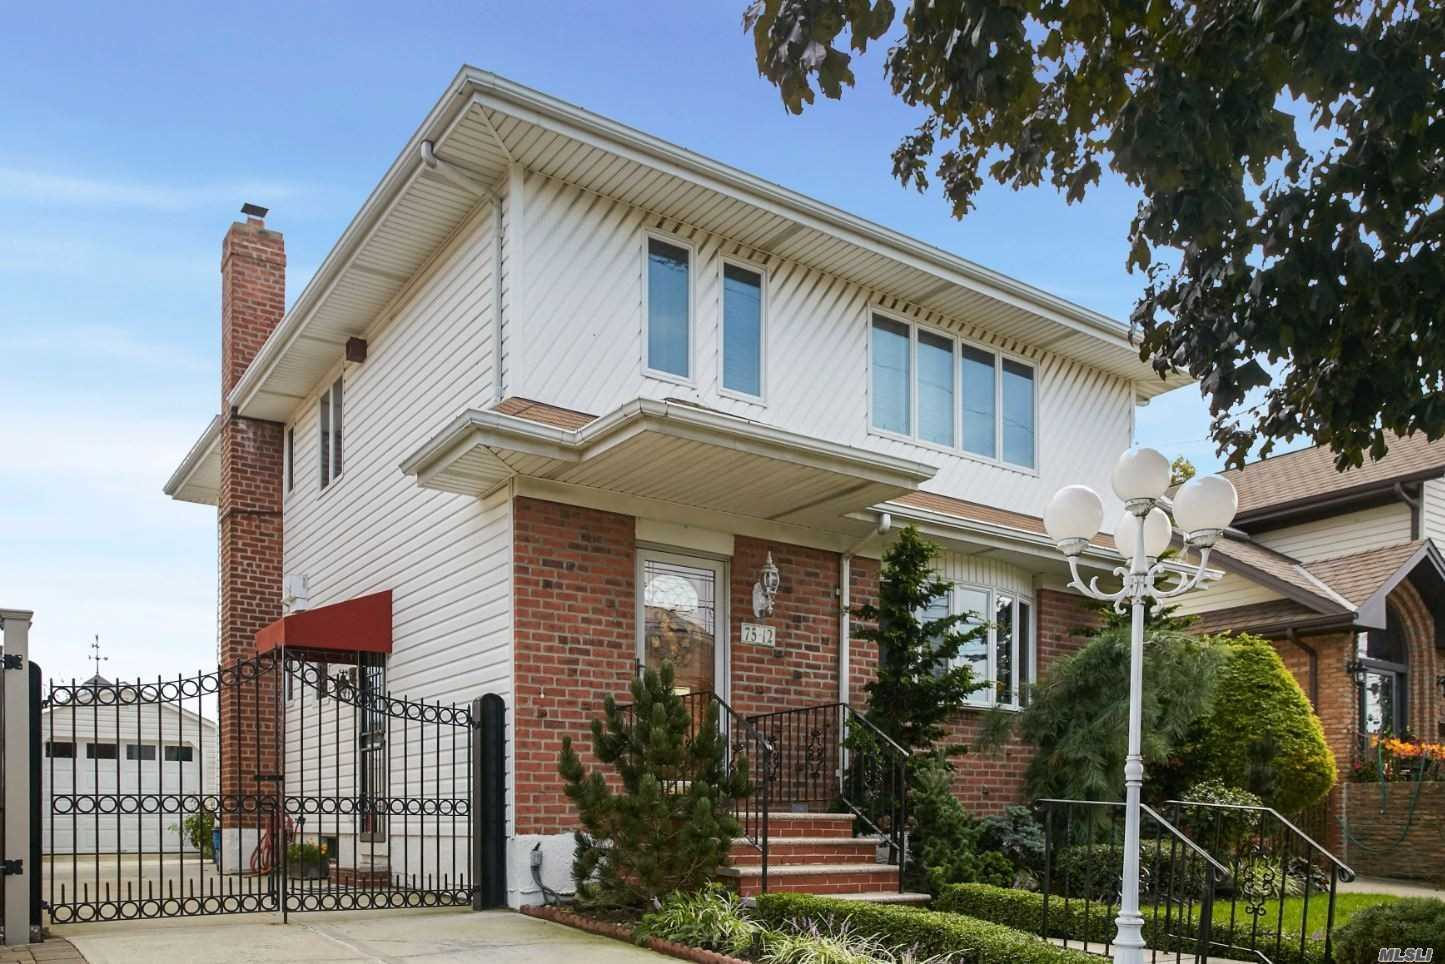 Beautiful 1 Family Detached Home On An Oversized Lot (40X95) In The Heart Of Midle Village Located On A Desirable Block (Penelope Ave). Modern Eat-In-Kitchen W/ Sub Zero Refrigerator, Formal Diningroom, Spacious Livingroom, 4 Bedrooms, Full Finished Basment, Garage, Private Driveway And Private Yard.